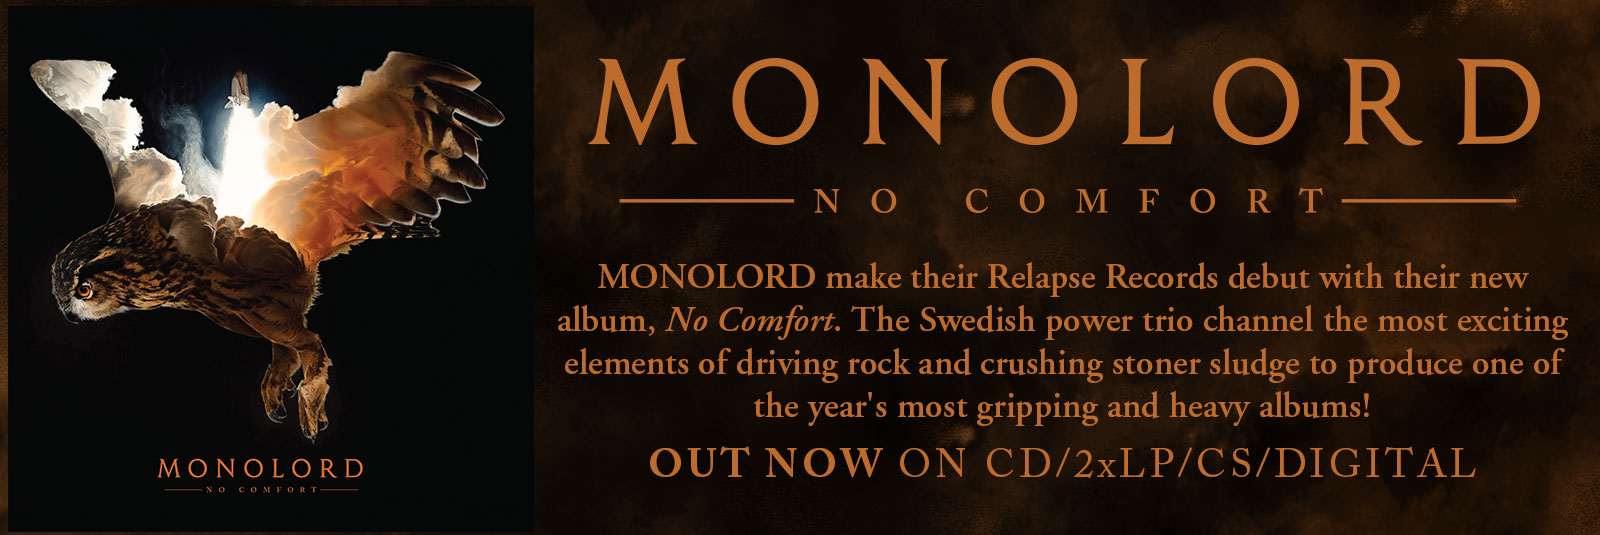 monolord-no-comfort-doom-metal-hard-rock-relapse